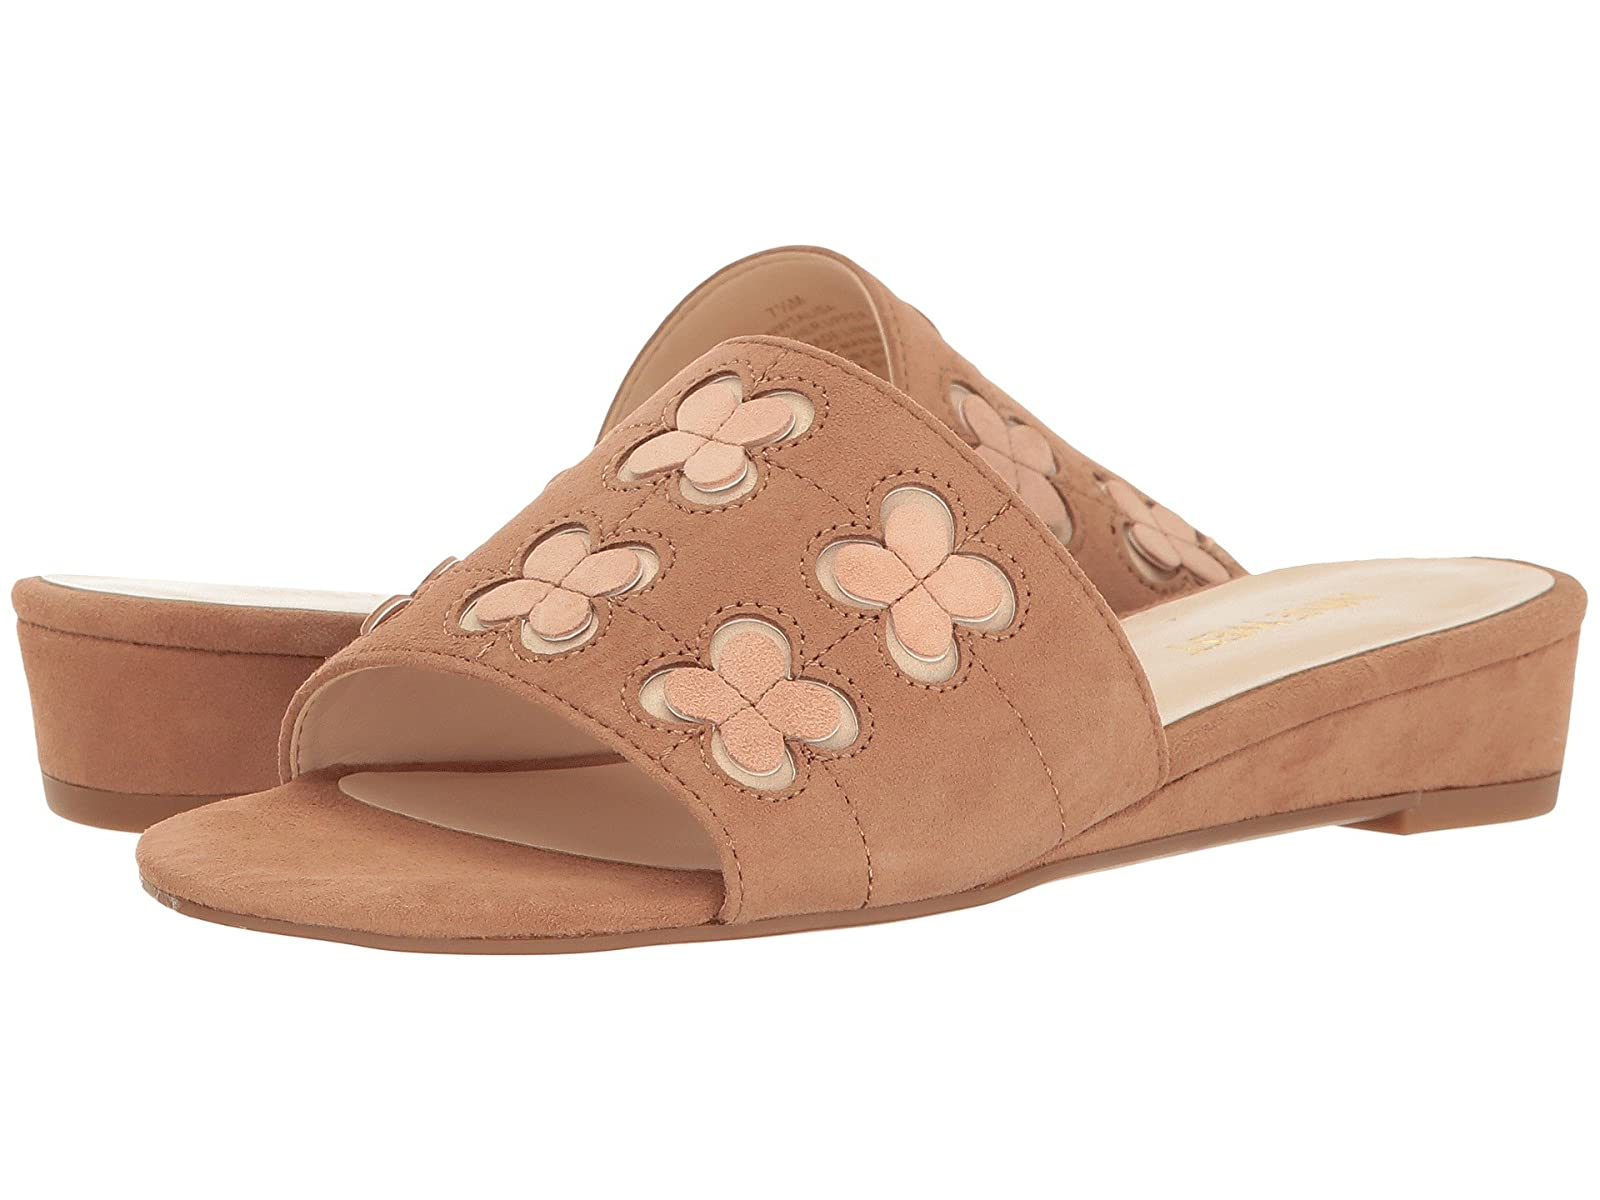 Nine West TalisaCheap and distinctive eye-catching shoes